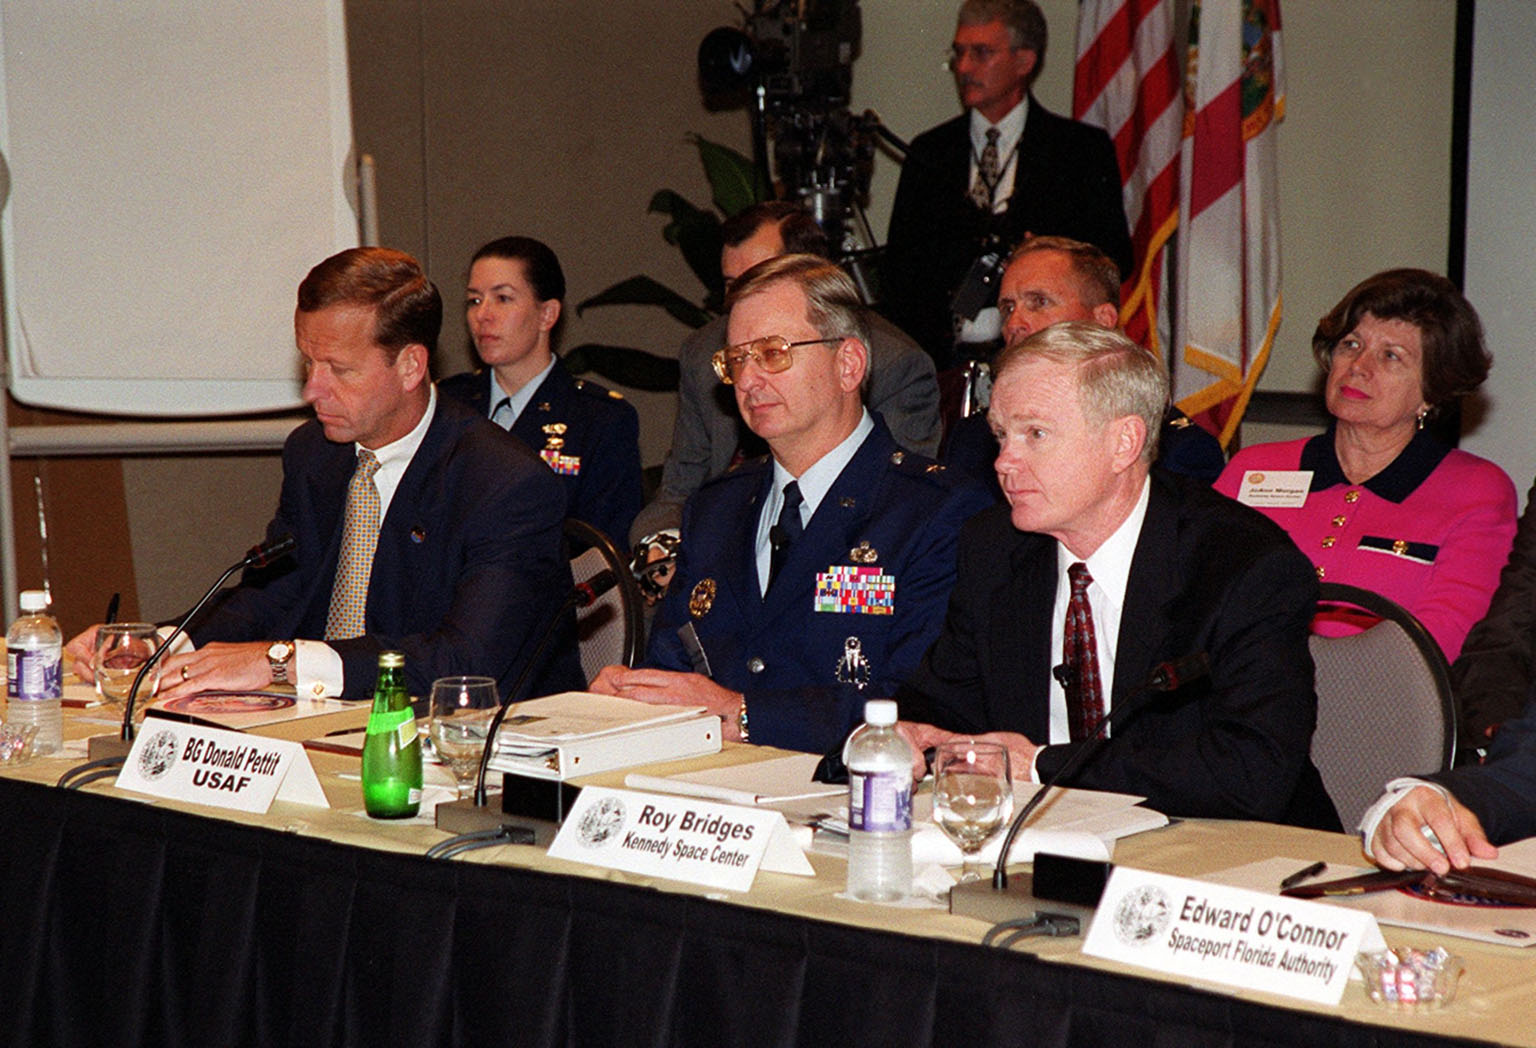 Taking part in the First Florida Space Summit on the future of space as it relates to the State of Florida are (left to right) Lt. Governor Frank Brogan, 45th Space Wing Commander Brig. Gen. Donald Pettit, and Center Director Roy Bridges, who moderated the discussion. The event, held at the Kennedy Space Center Visitor Complex, also included Senator Bob Graham, Senator Connie Mack, State Senator Patsy Kurth, Representative Dave Weldon, and heads of aerospace companies